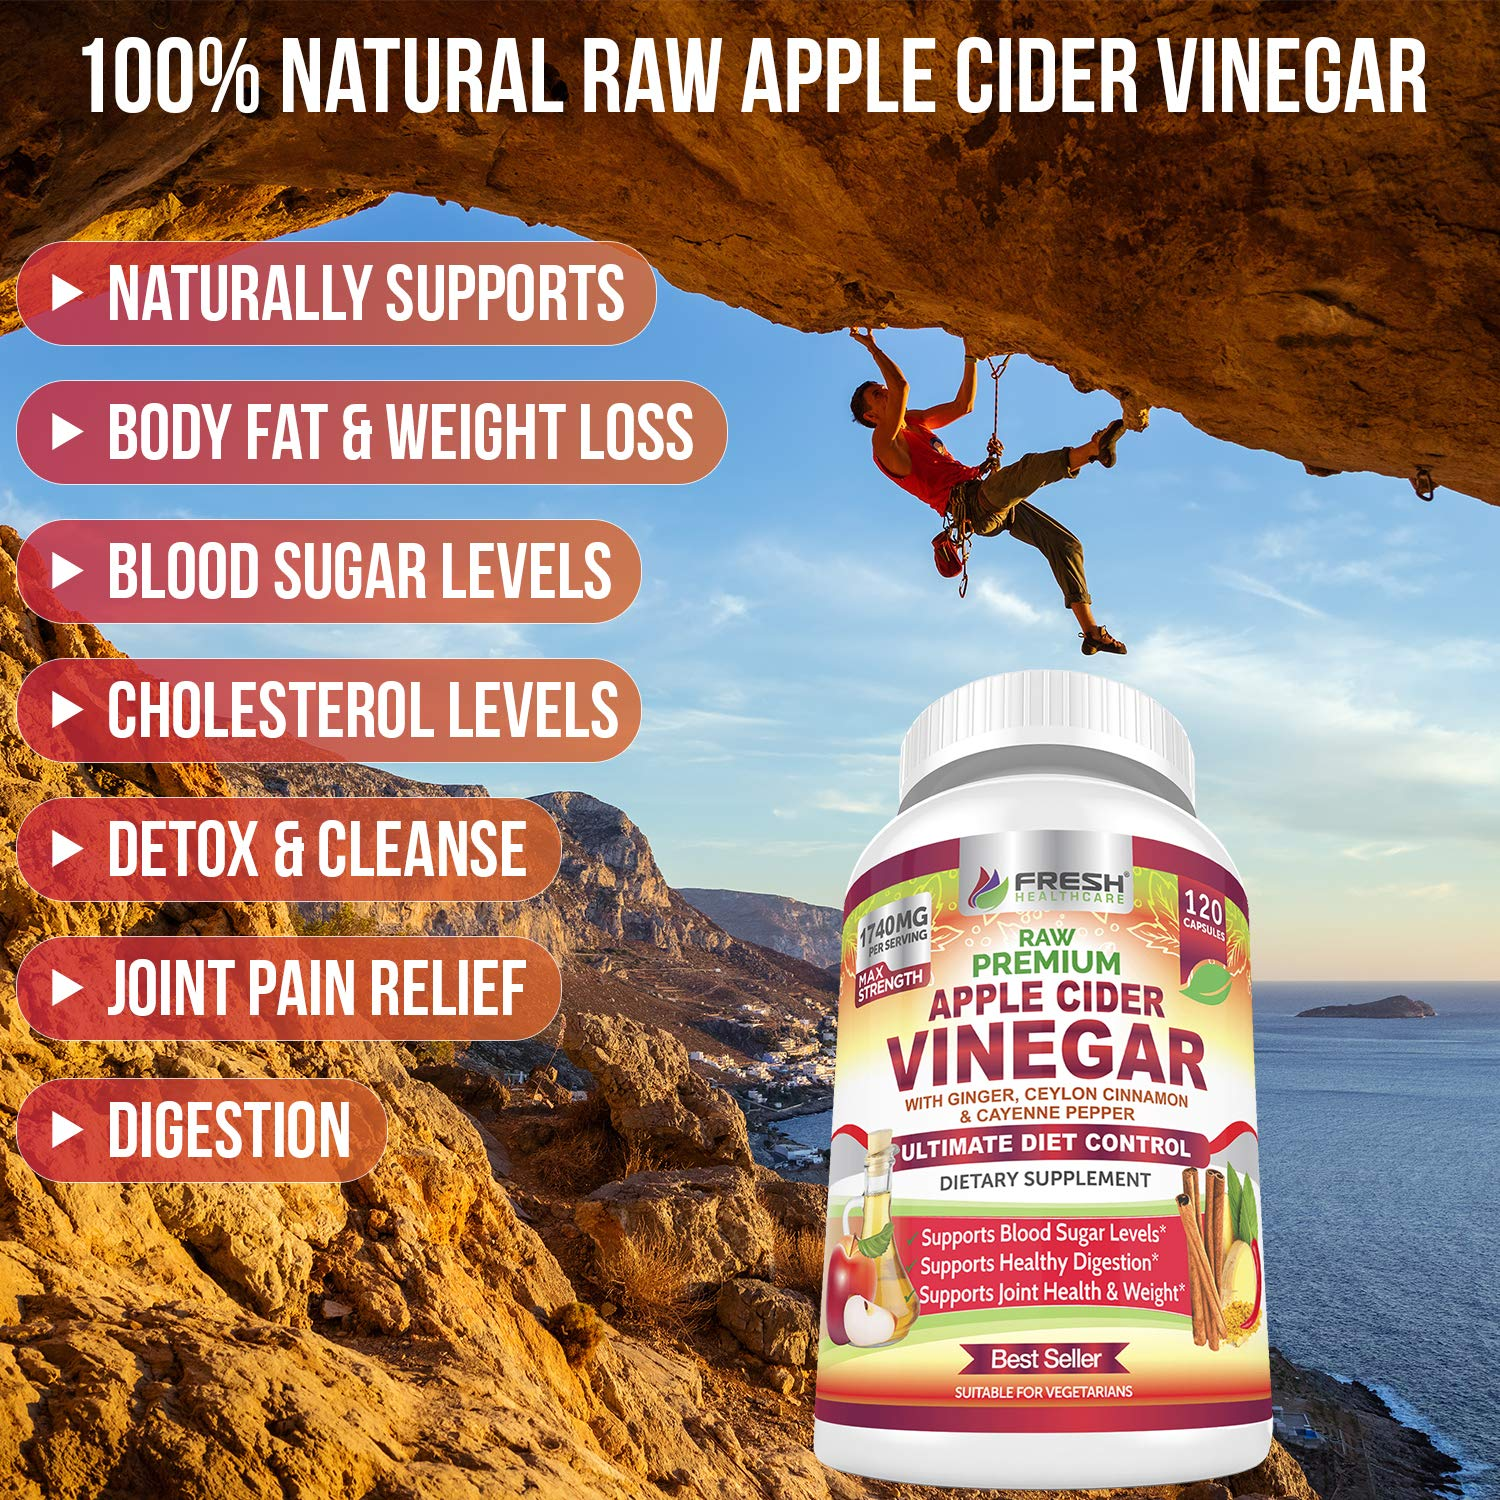 Organic Apple Cider Vinegar Pills Max 1740mg with Mother - 100% Natural & Raw with Ceylon Cinnamon, Ginger & Cayenne Pepper - Ideal for Healthy Blood Sugar, Detox & Digestion-120 Vegan Capsules by FRESH HEALTHCARE (Image #3)